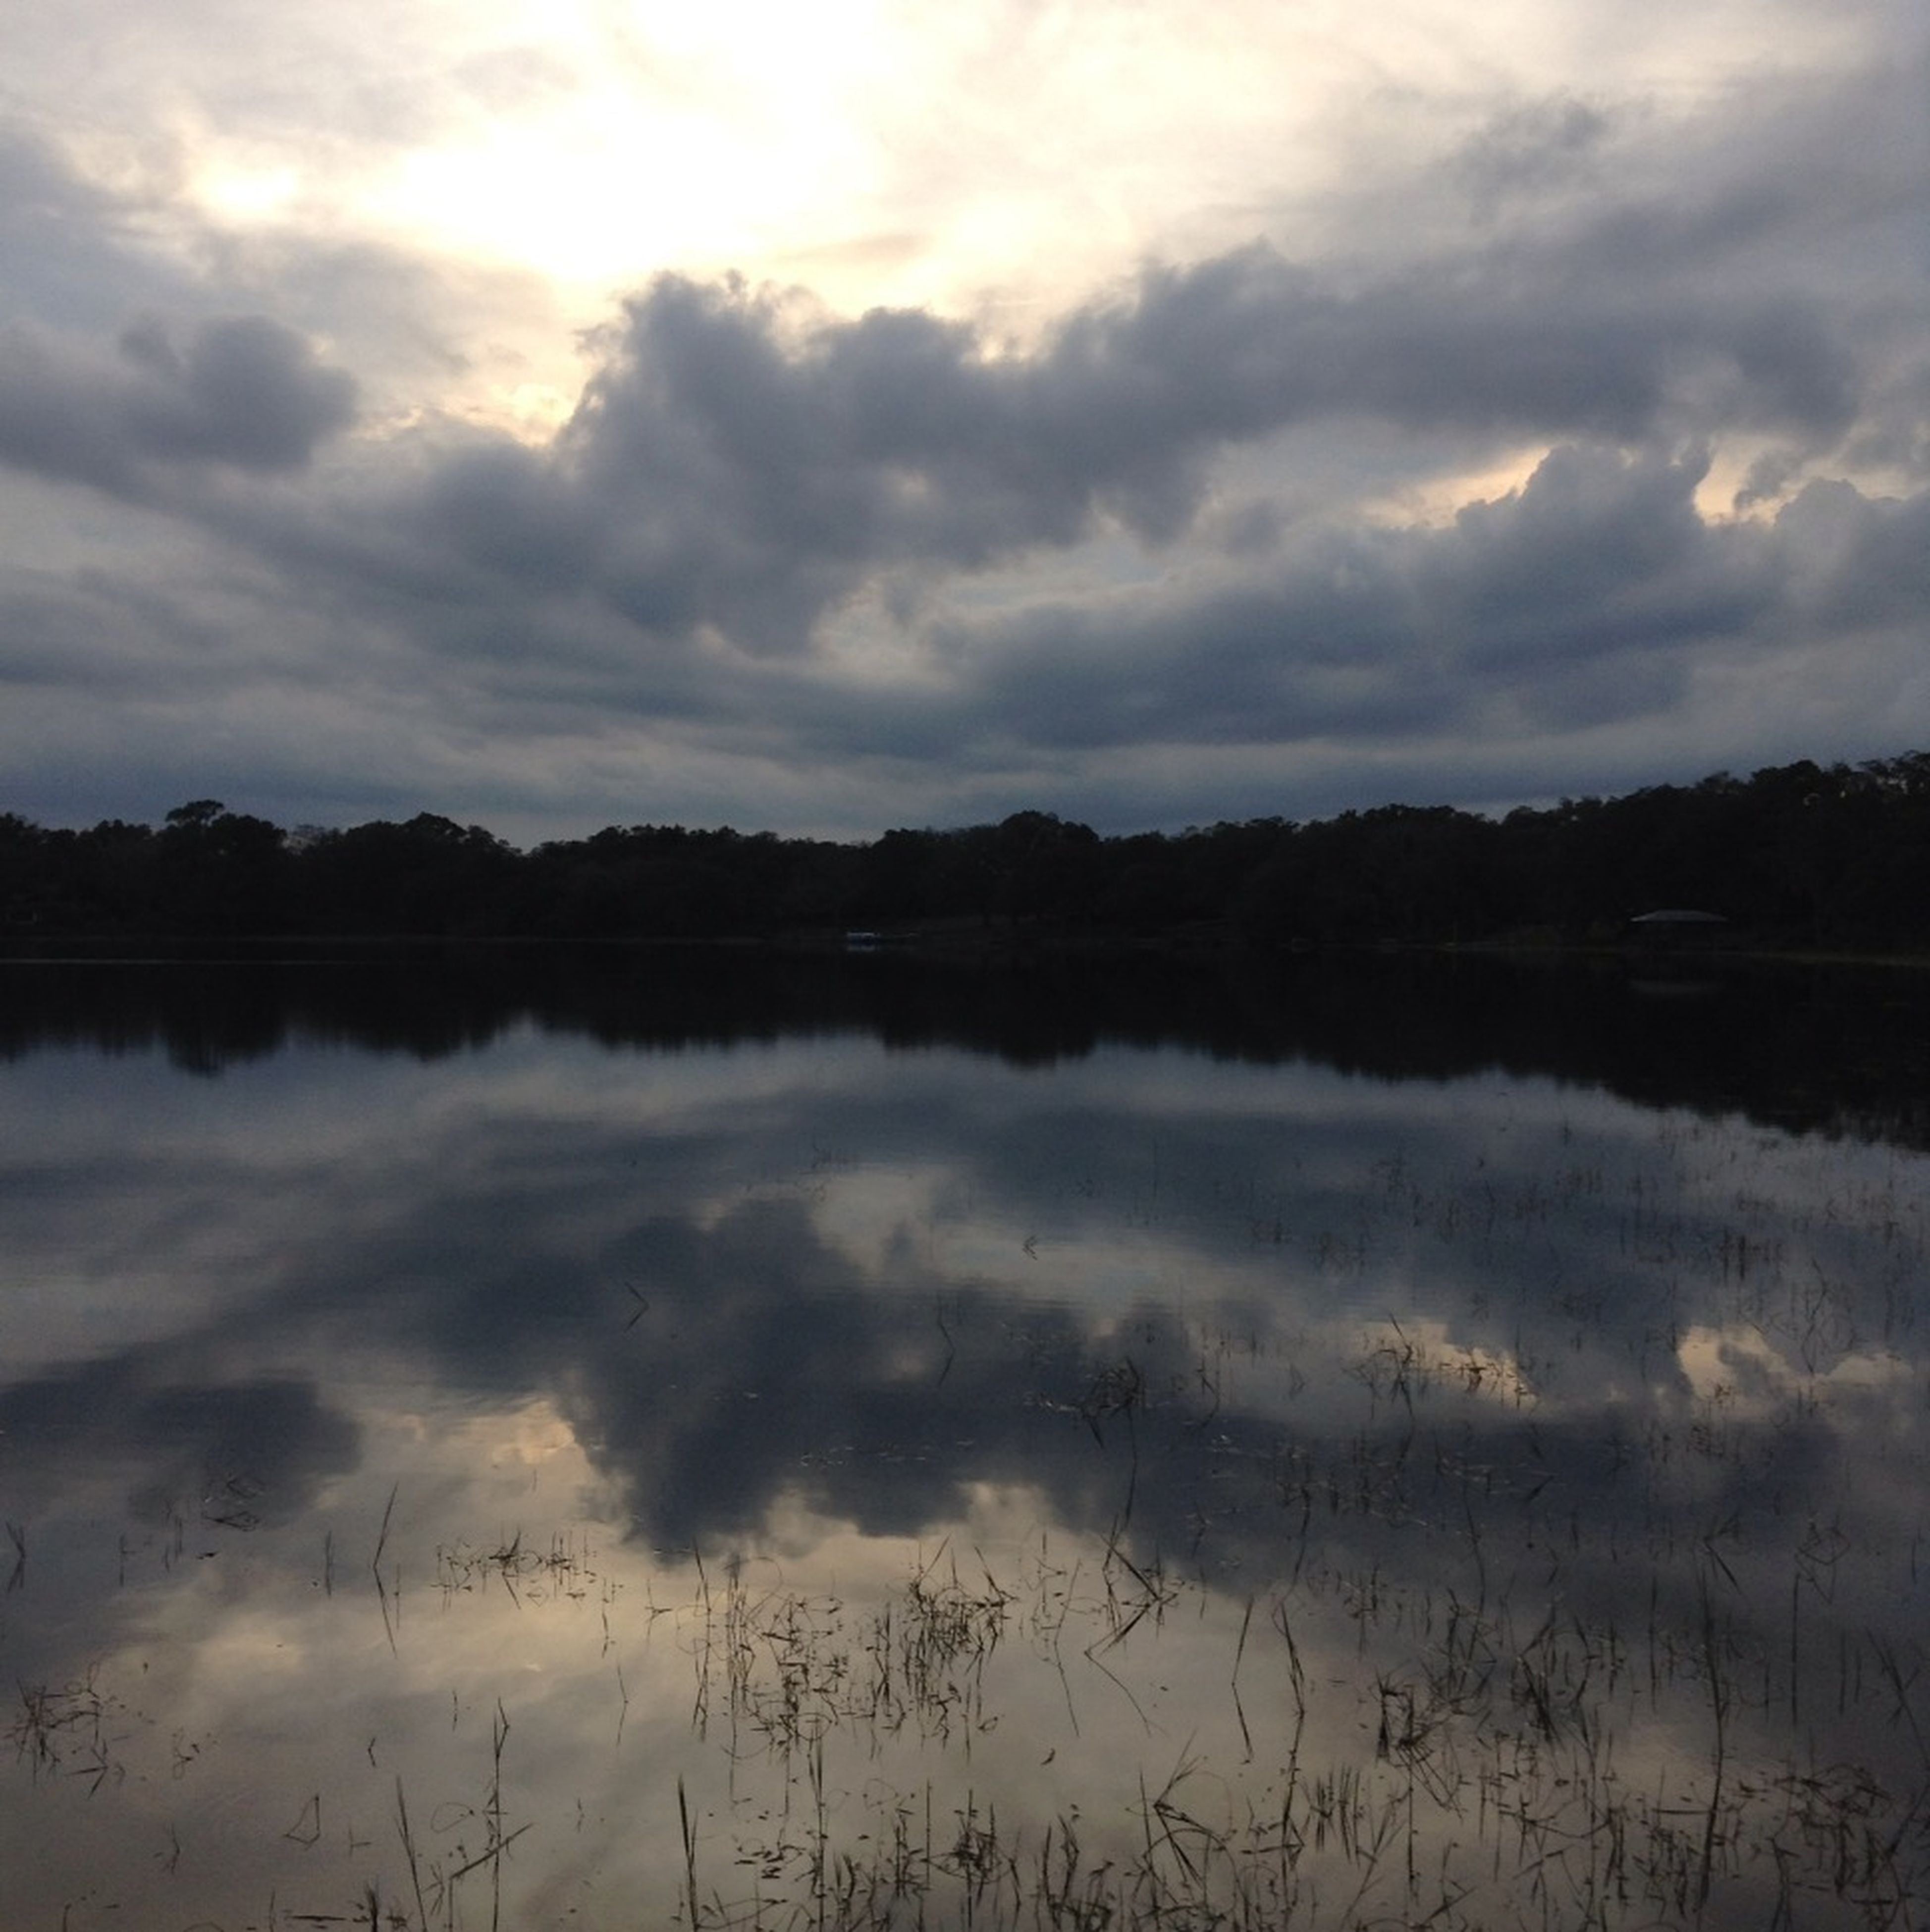 sky, reflection, water, tranquil scene, cloud - sky, lake, tranquility, scenics, beauty in nature, cloudy, nature, cloud, tree, idyllic, weather, sunset, standing water, non-urban scene, outdoors, calm